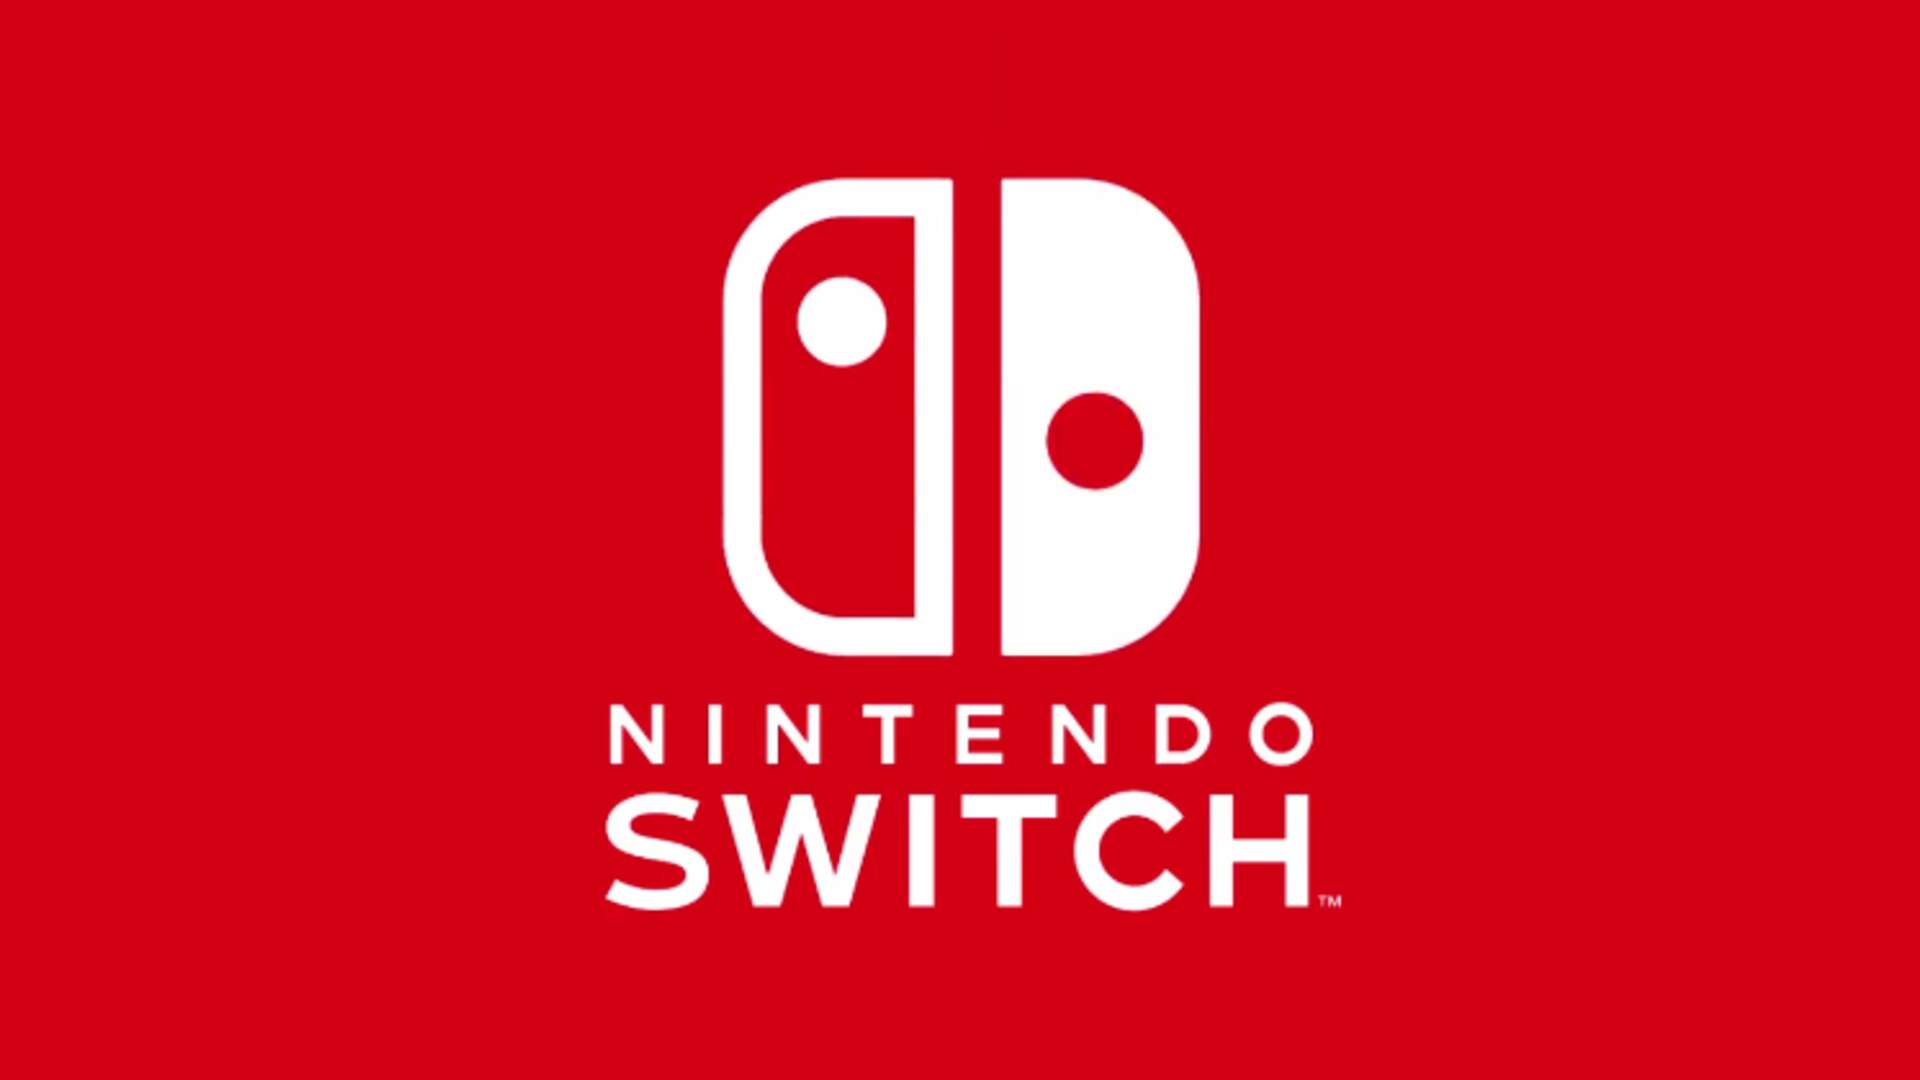 Nintendo Switch Might Sell at $249/£199.99 [Rumor]